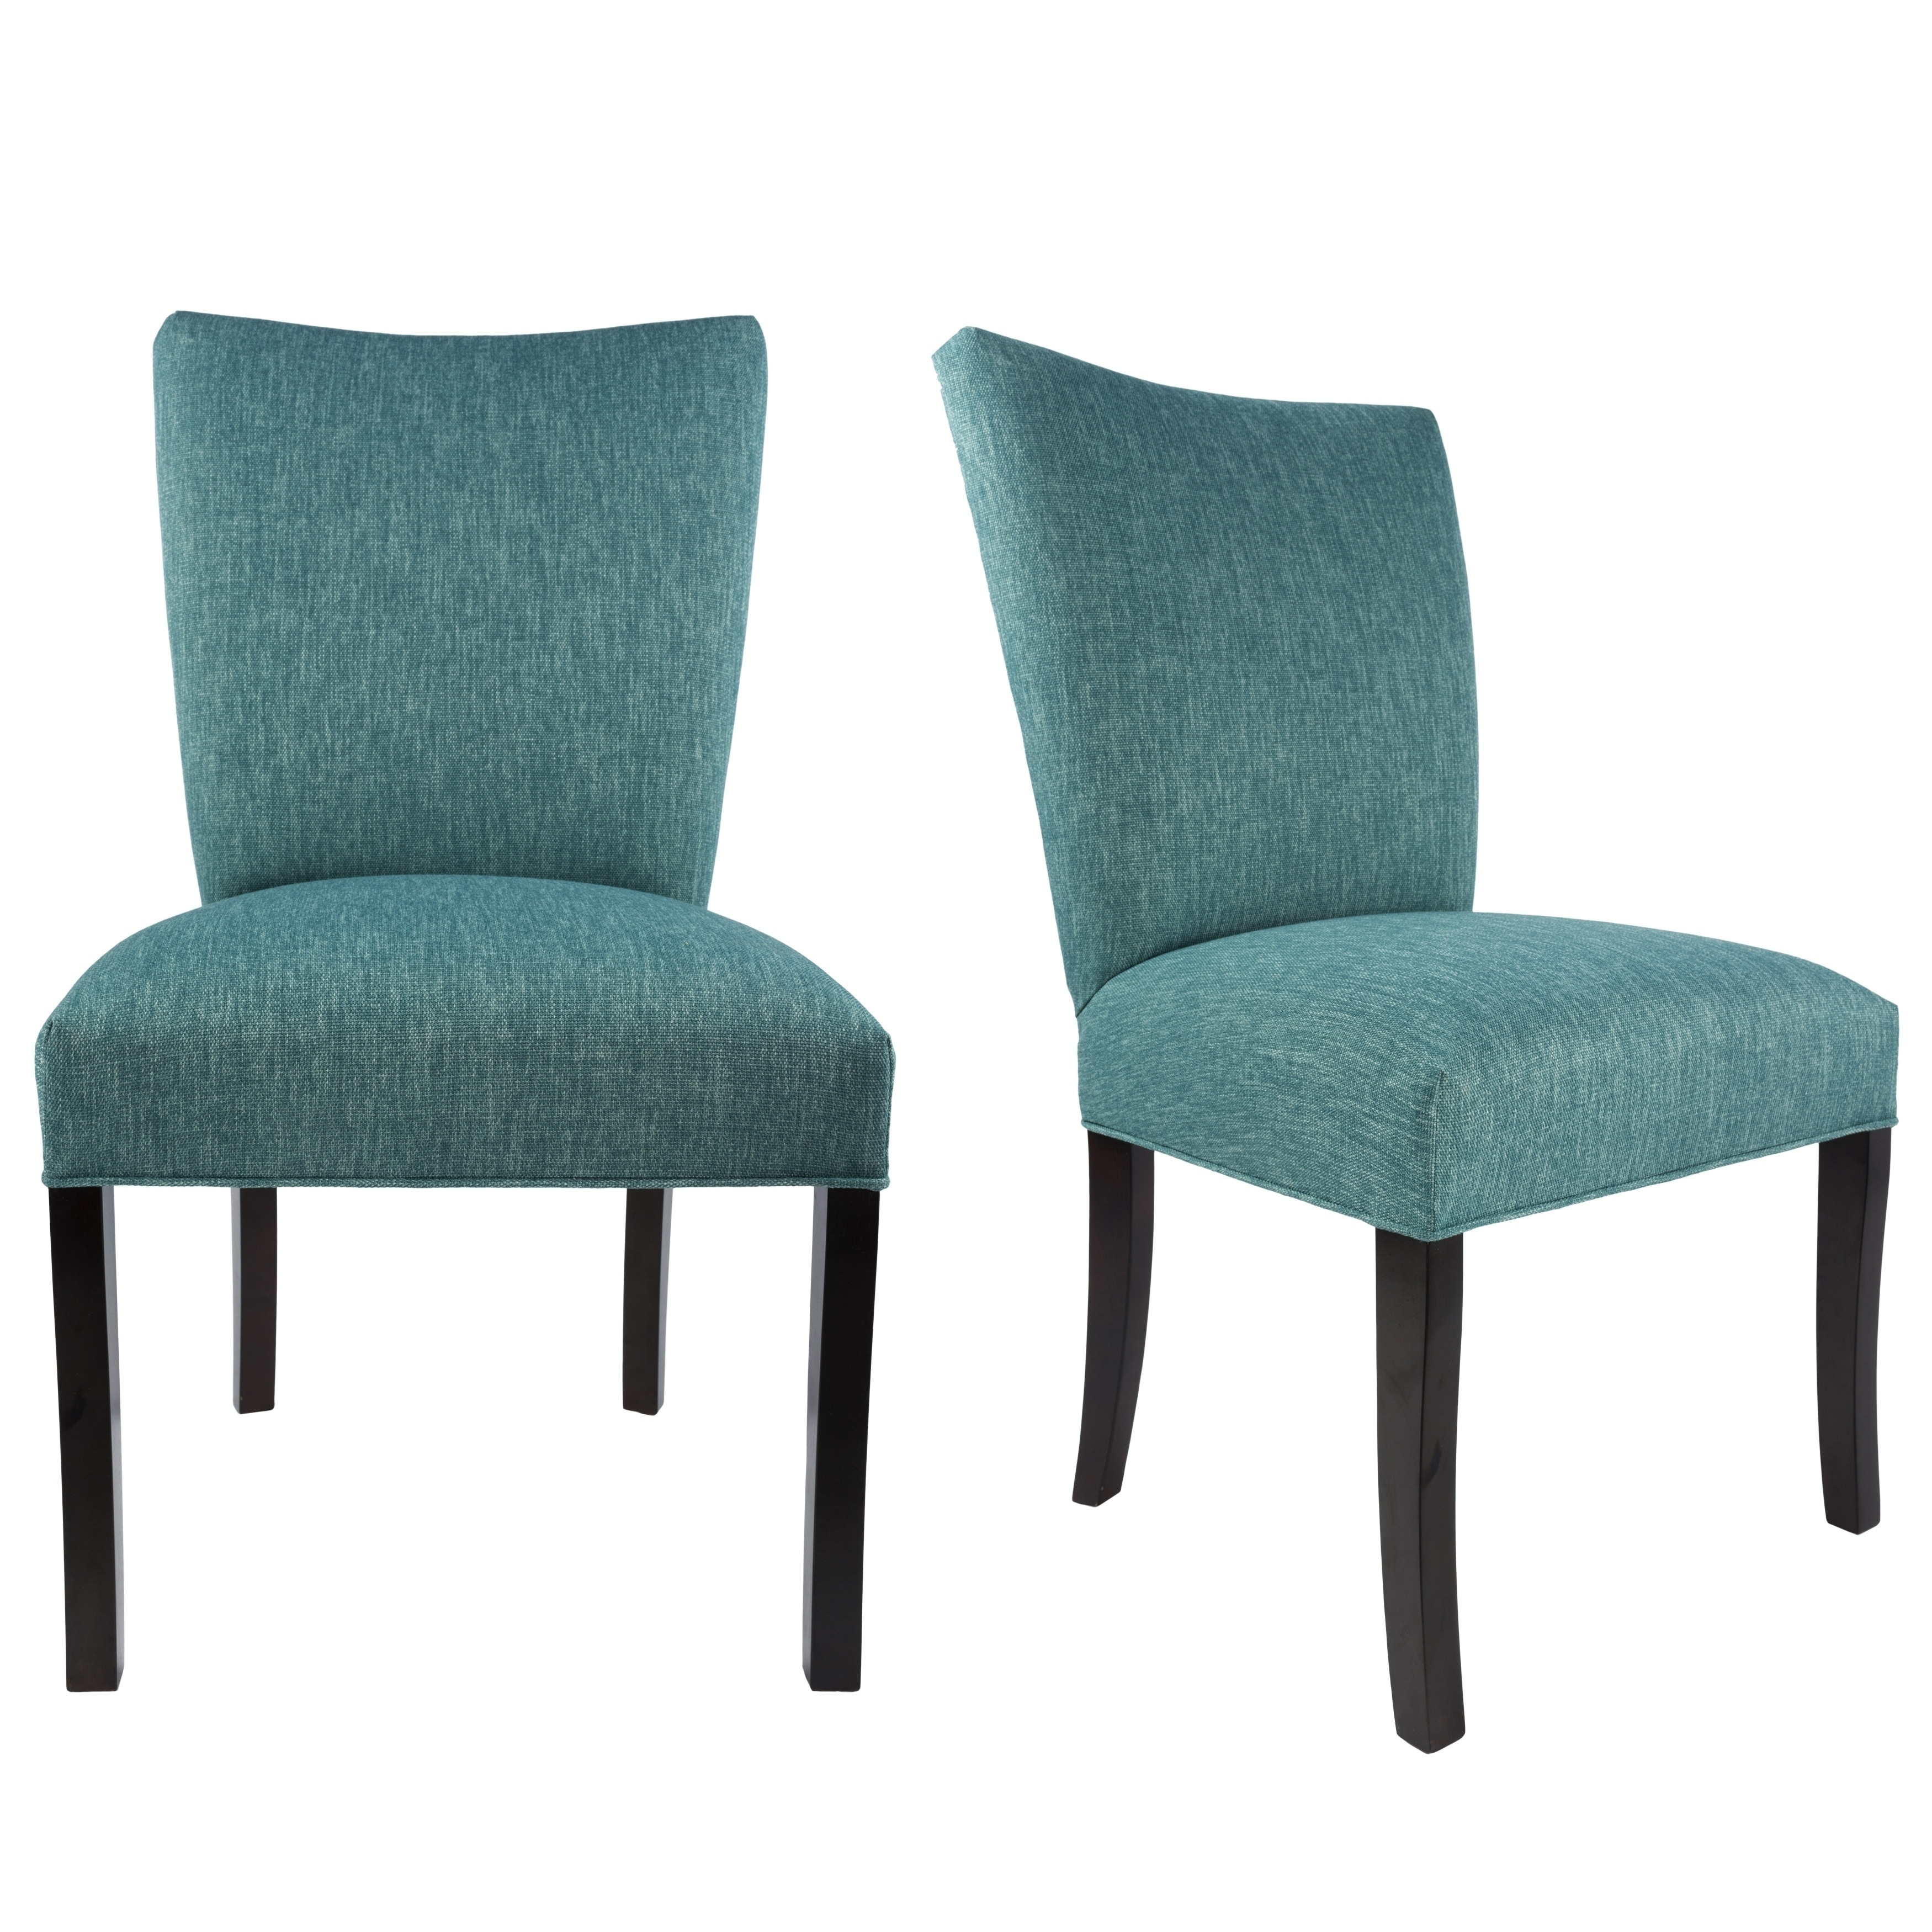 Buy teal kitchen dining room chairs online at overstock com our best dining room bar furniture deals